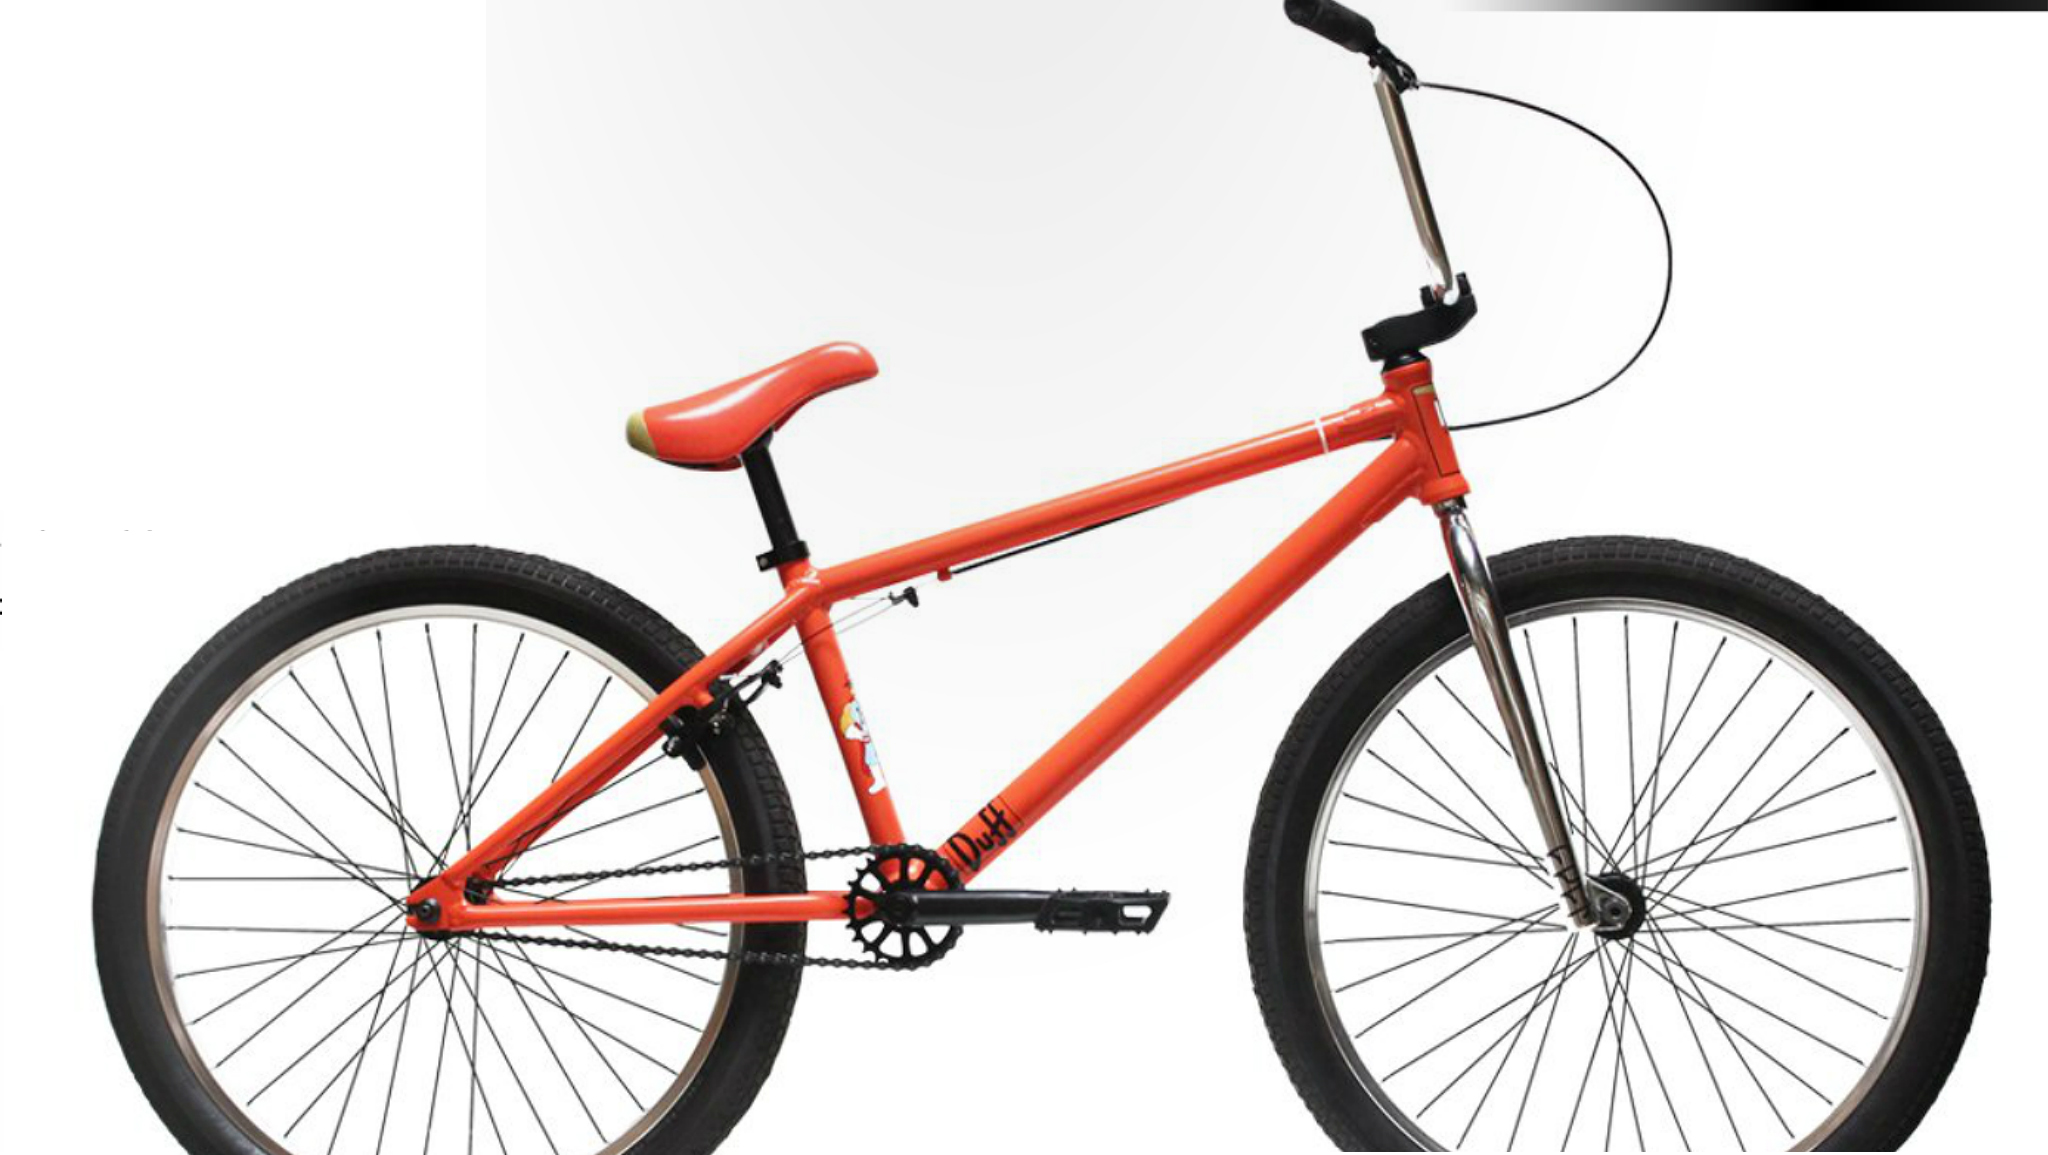 The new Cult/The Simpsons 24-inch collaboration cruiser debuts at Interbike 2013.